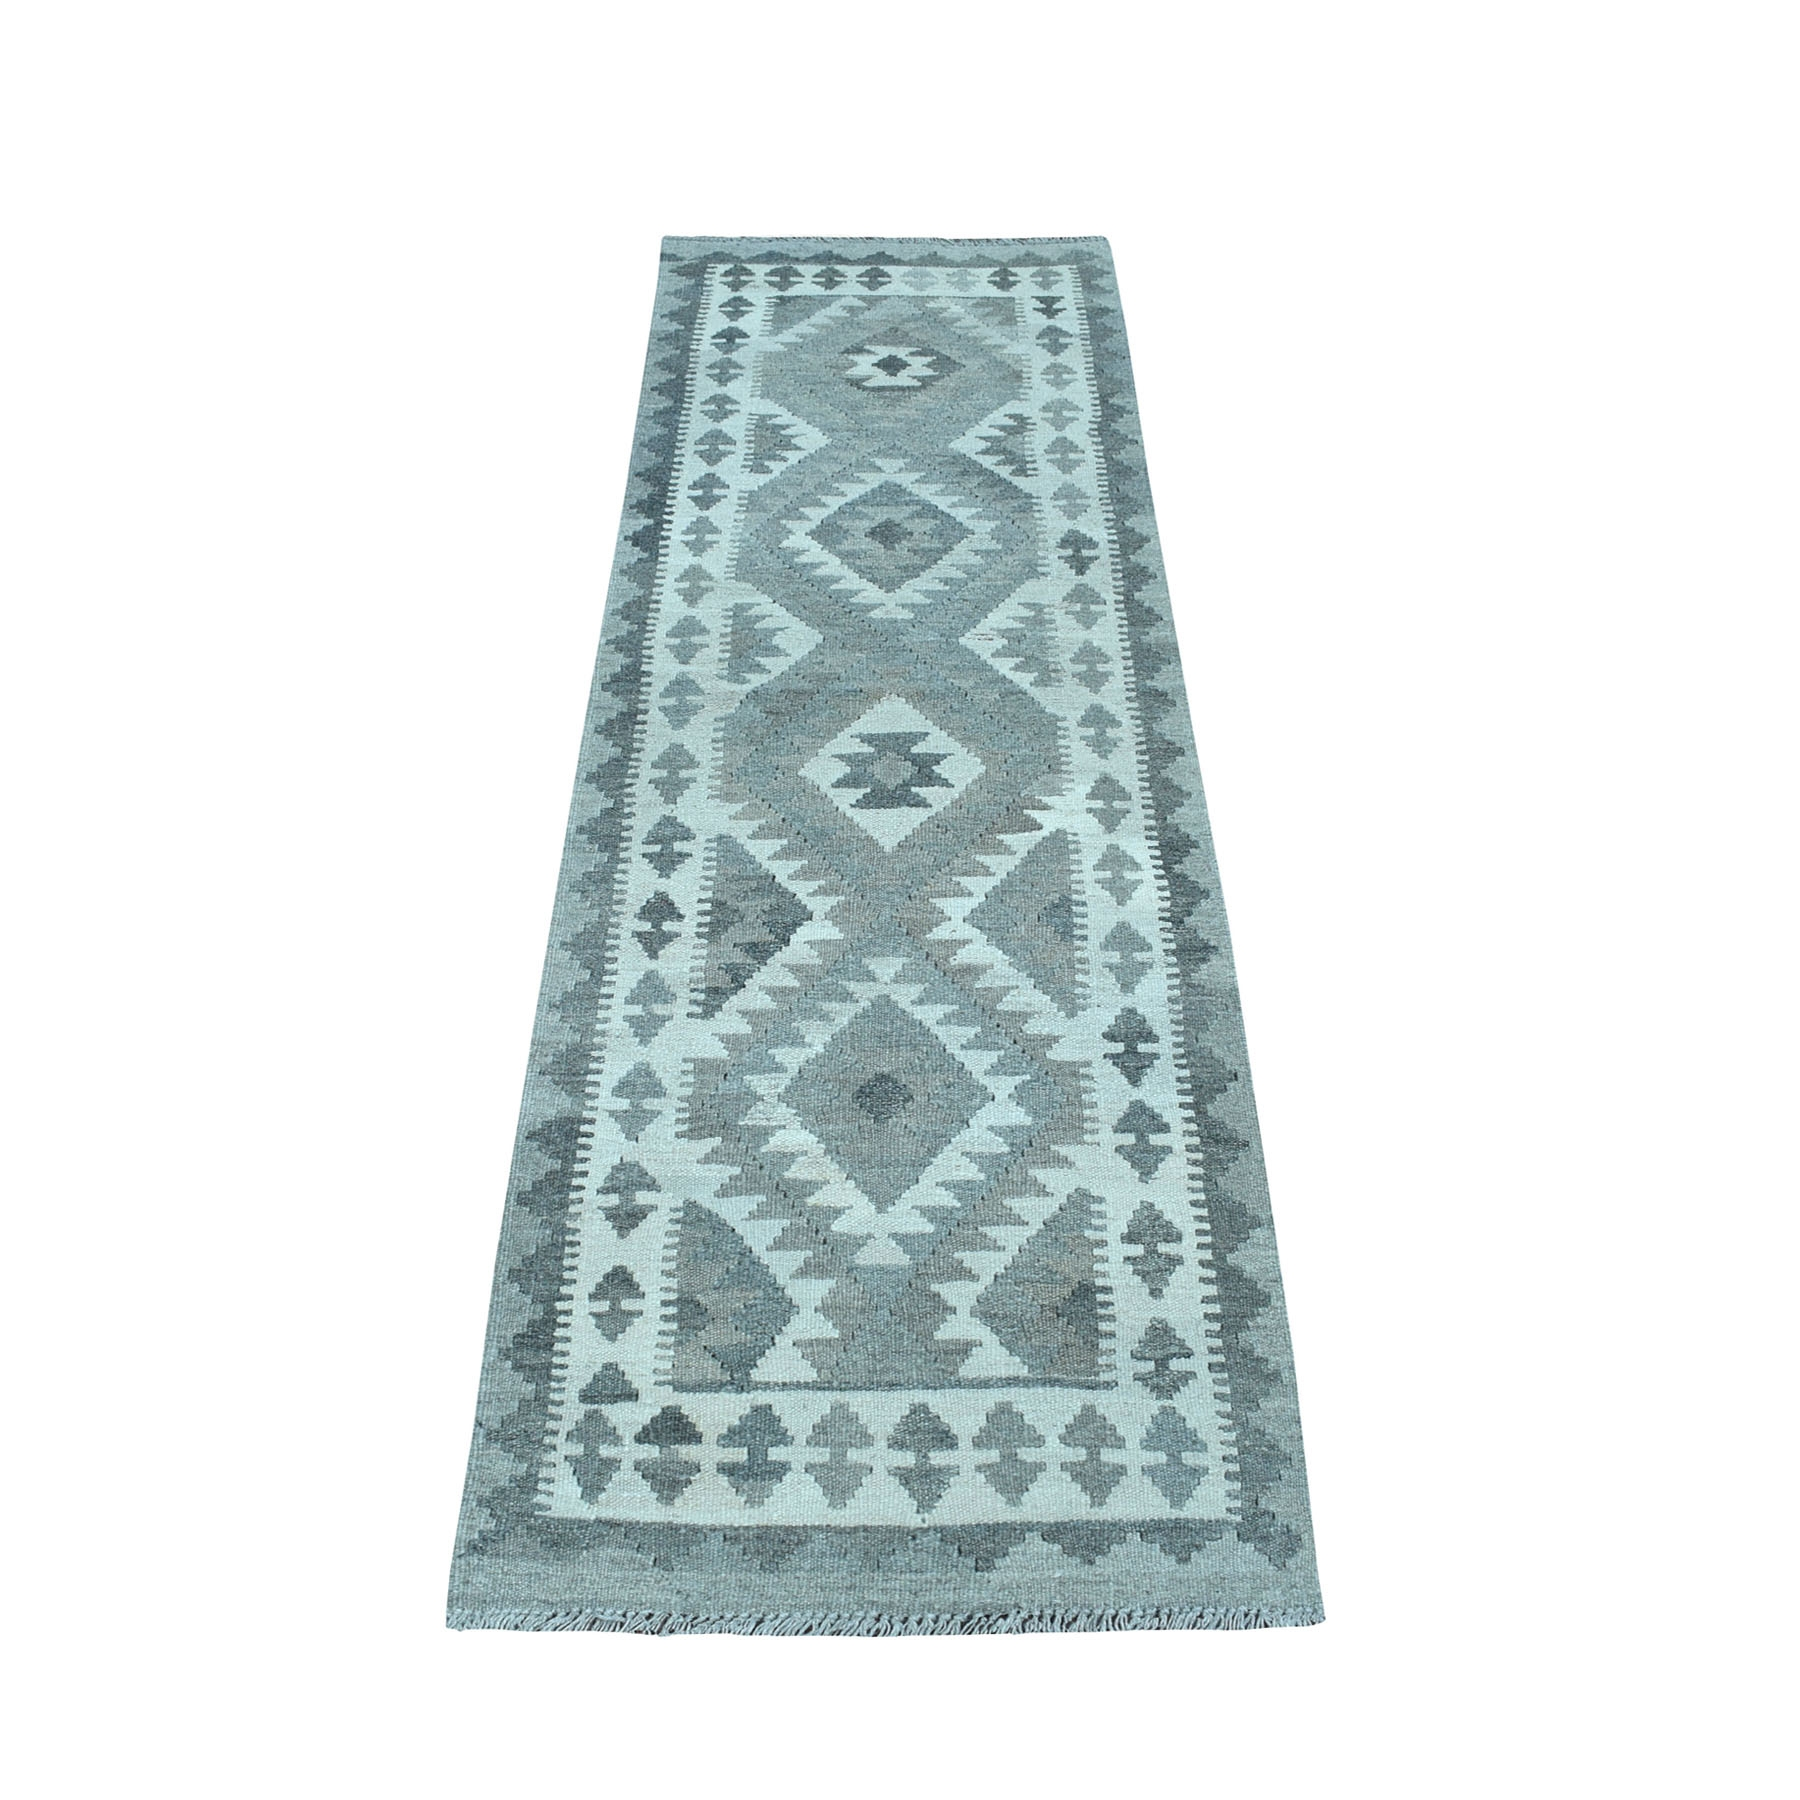 """2'X6'8"""" Undyed Natural Wool Afghan Kilim Reversible Hand Woven Runner Oriental Rug moaec0d9"""